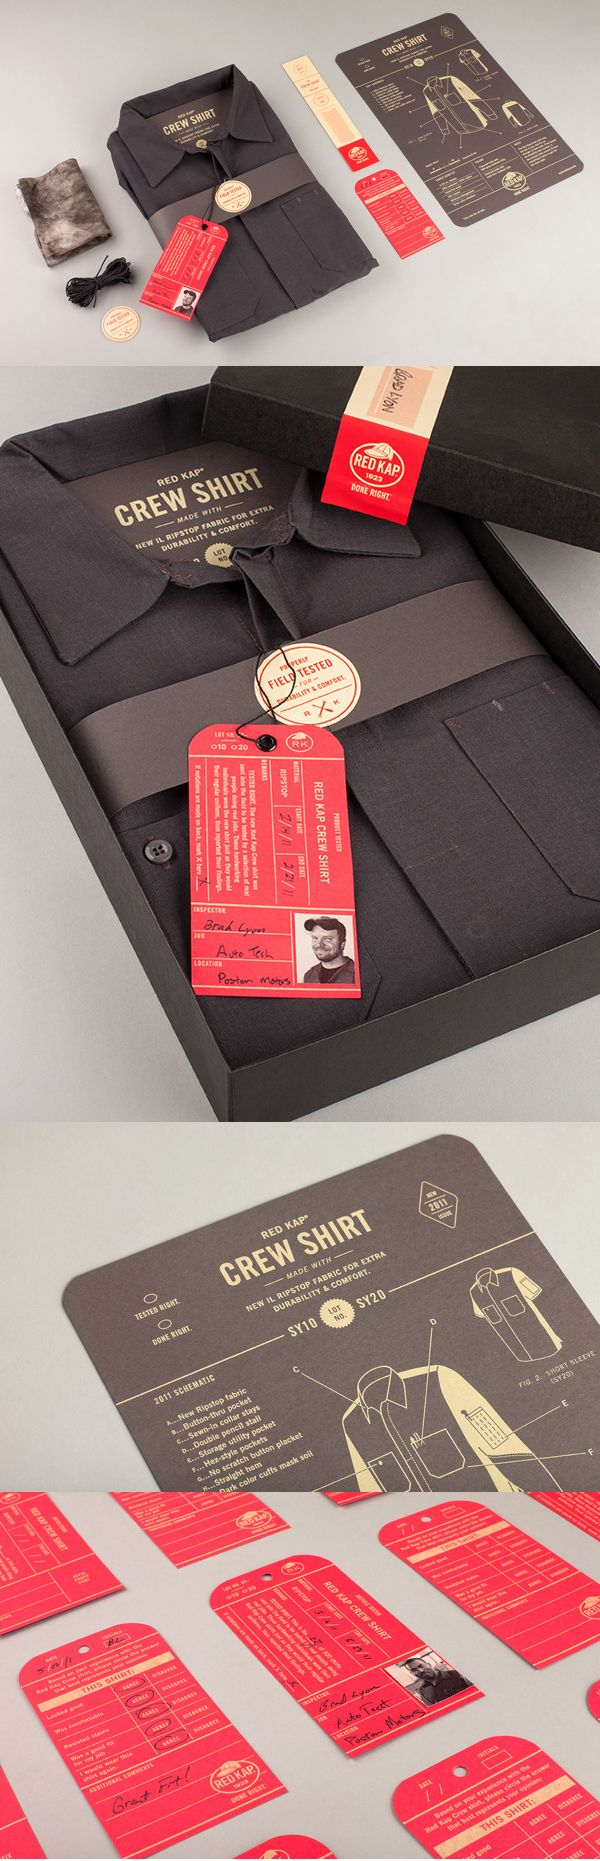 Here you go Léonie van D. a little longer pin. Red Kap #identity #packaging #branding PD